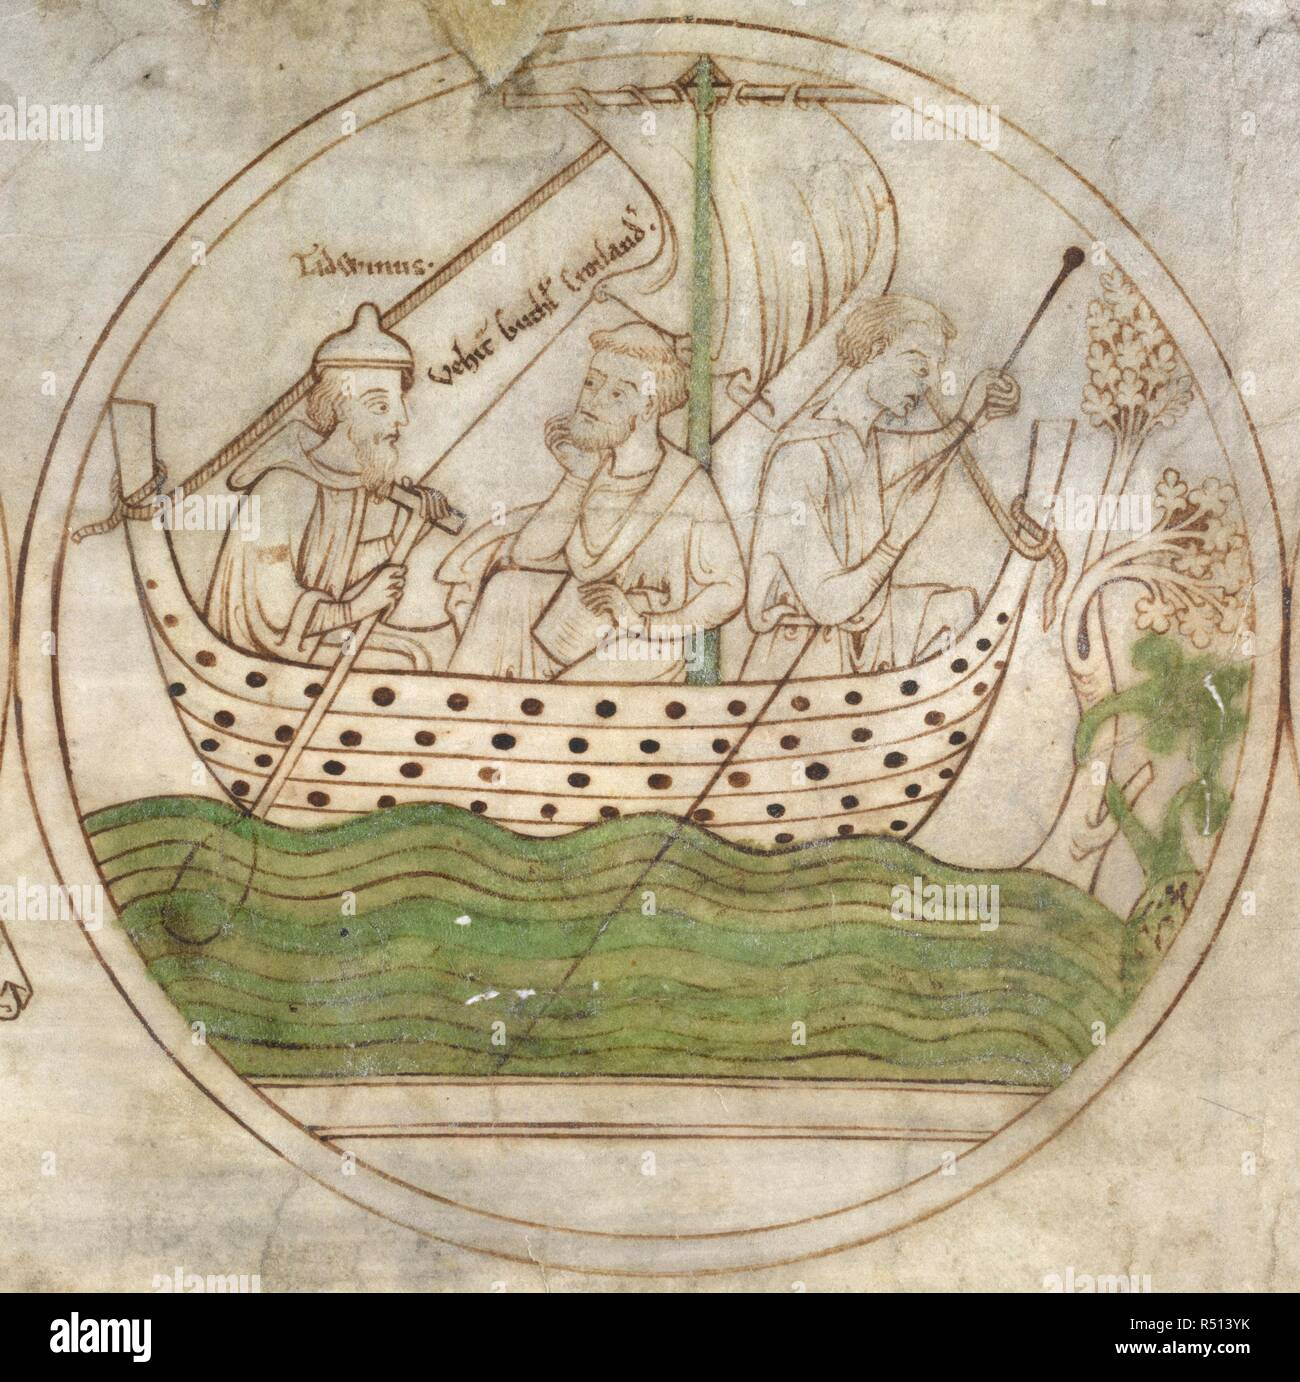 Tatwin conveys Guthlac by boat to Crowland. Guthlac Roll. East Anglia, circa 1210. Source: Harley Roll Y. 6, roundel 4. Language: Latin. - Stock Image